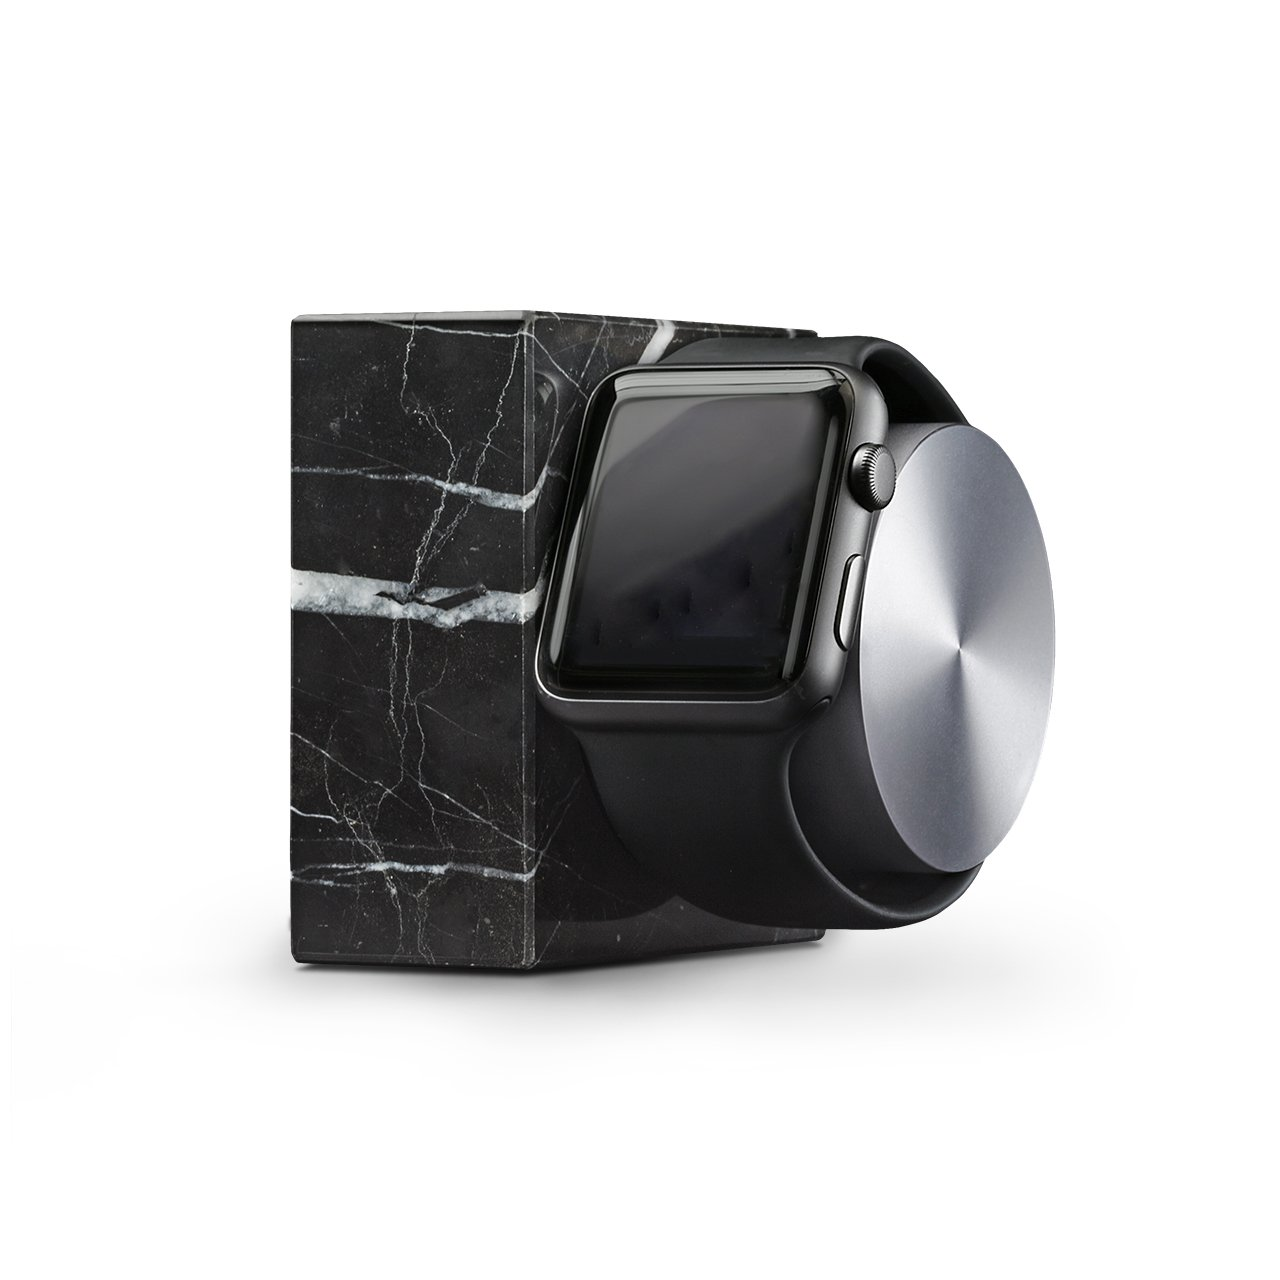 Native Union DOCK for Apple Watch (Luxury Tech) - Marble Weighted Charging Dock for Apple Watch (Black) by Native Union (Image #1)